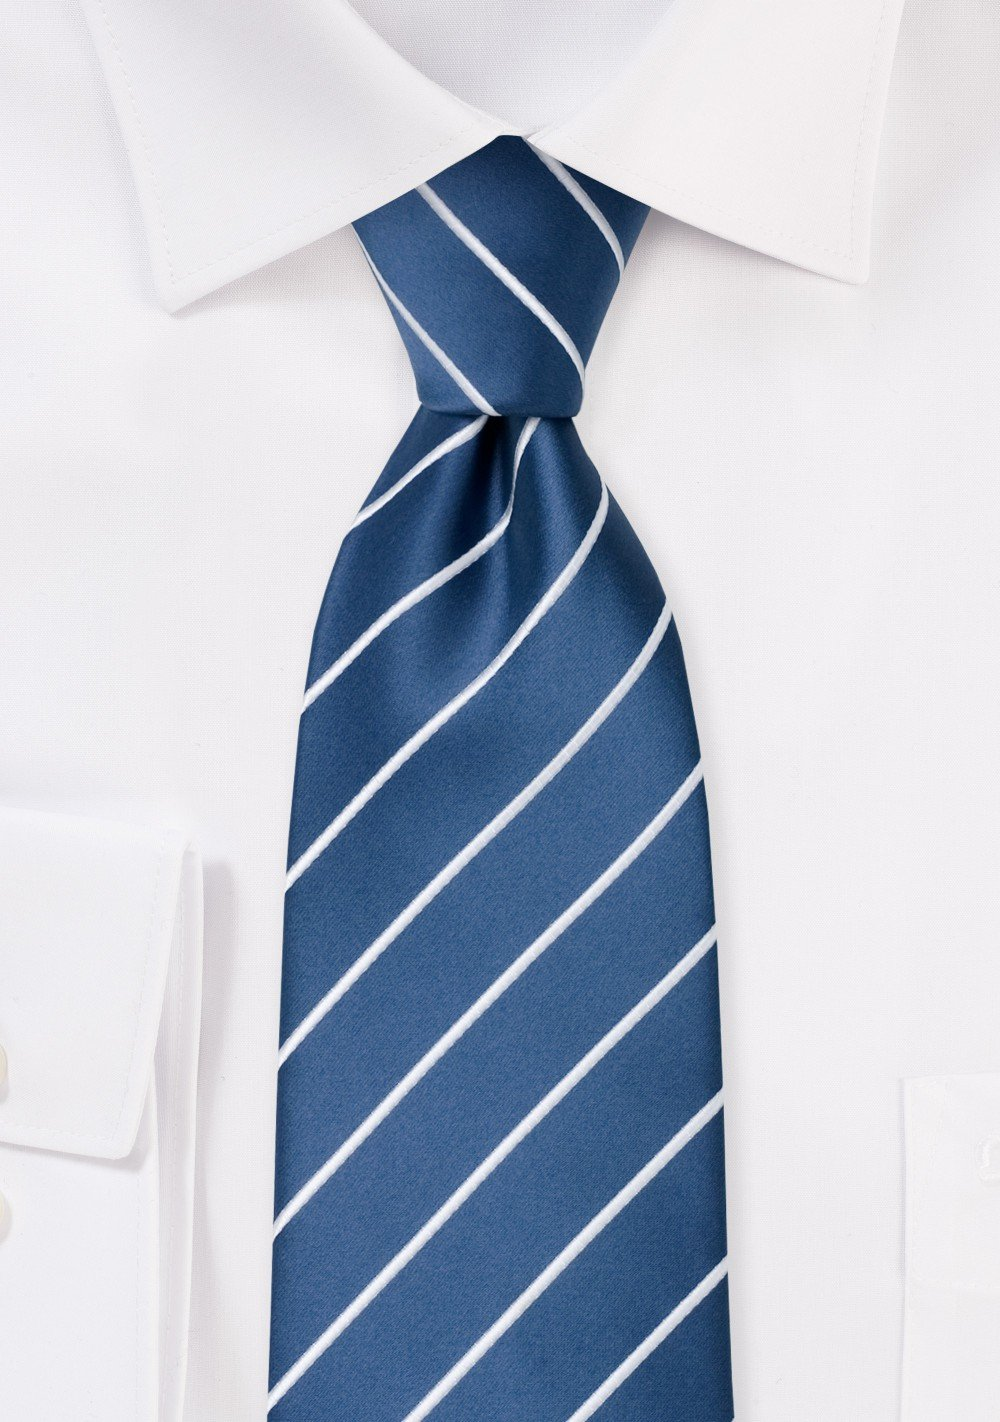 Modern striped ties - Royal blue necktie with fine white stripes